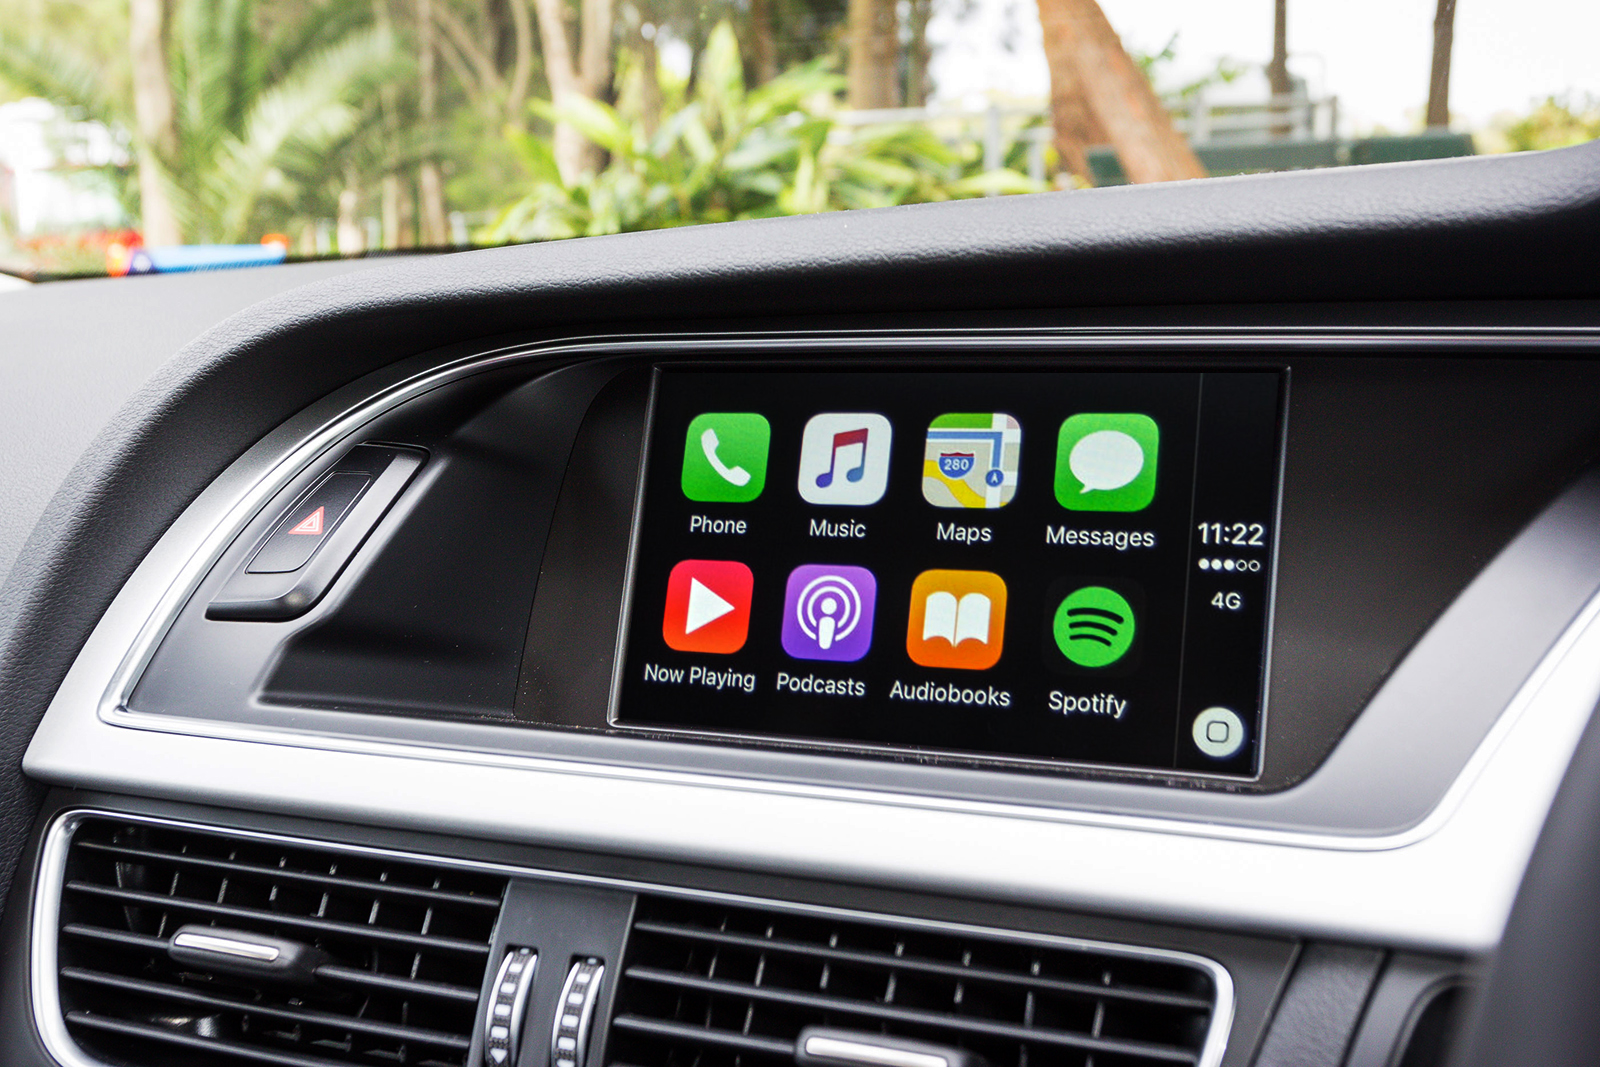 Apple CarPlay Retrofit Upgrade Is Available Older Audi Vehicles - Audi car play